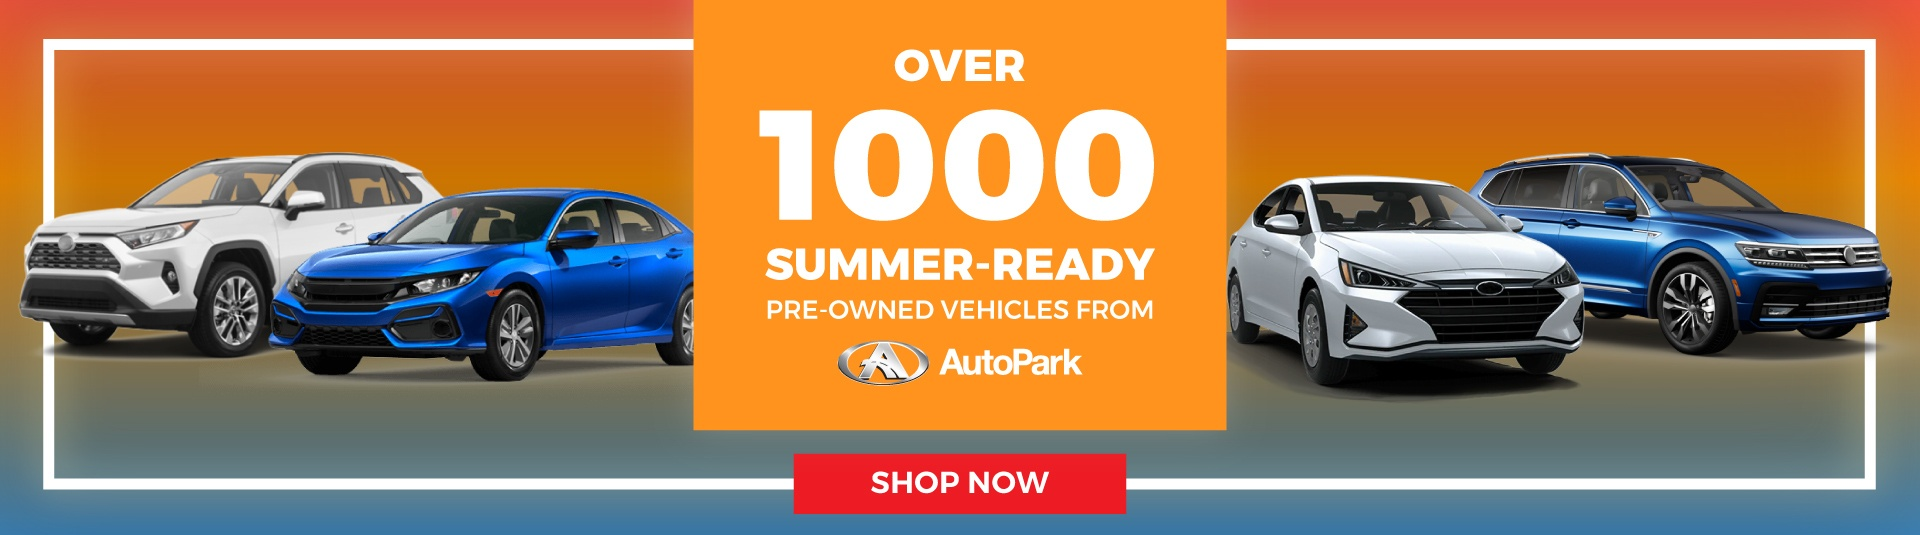 AutoPark Used Car Dealership Cars in Summer